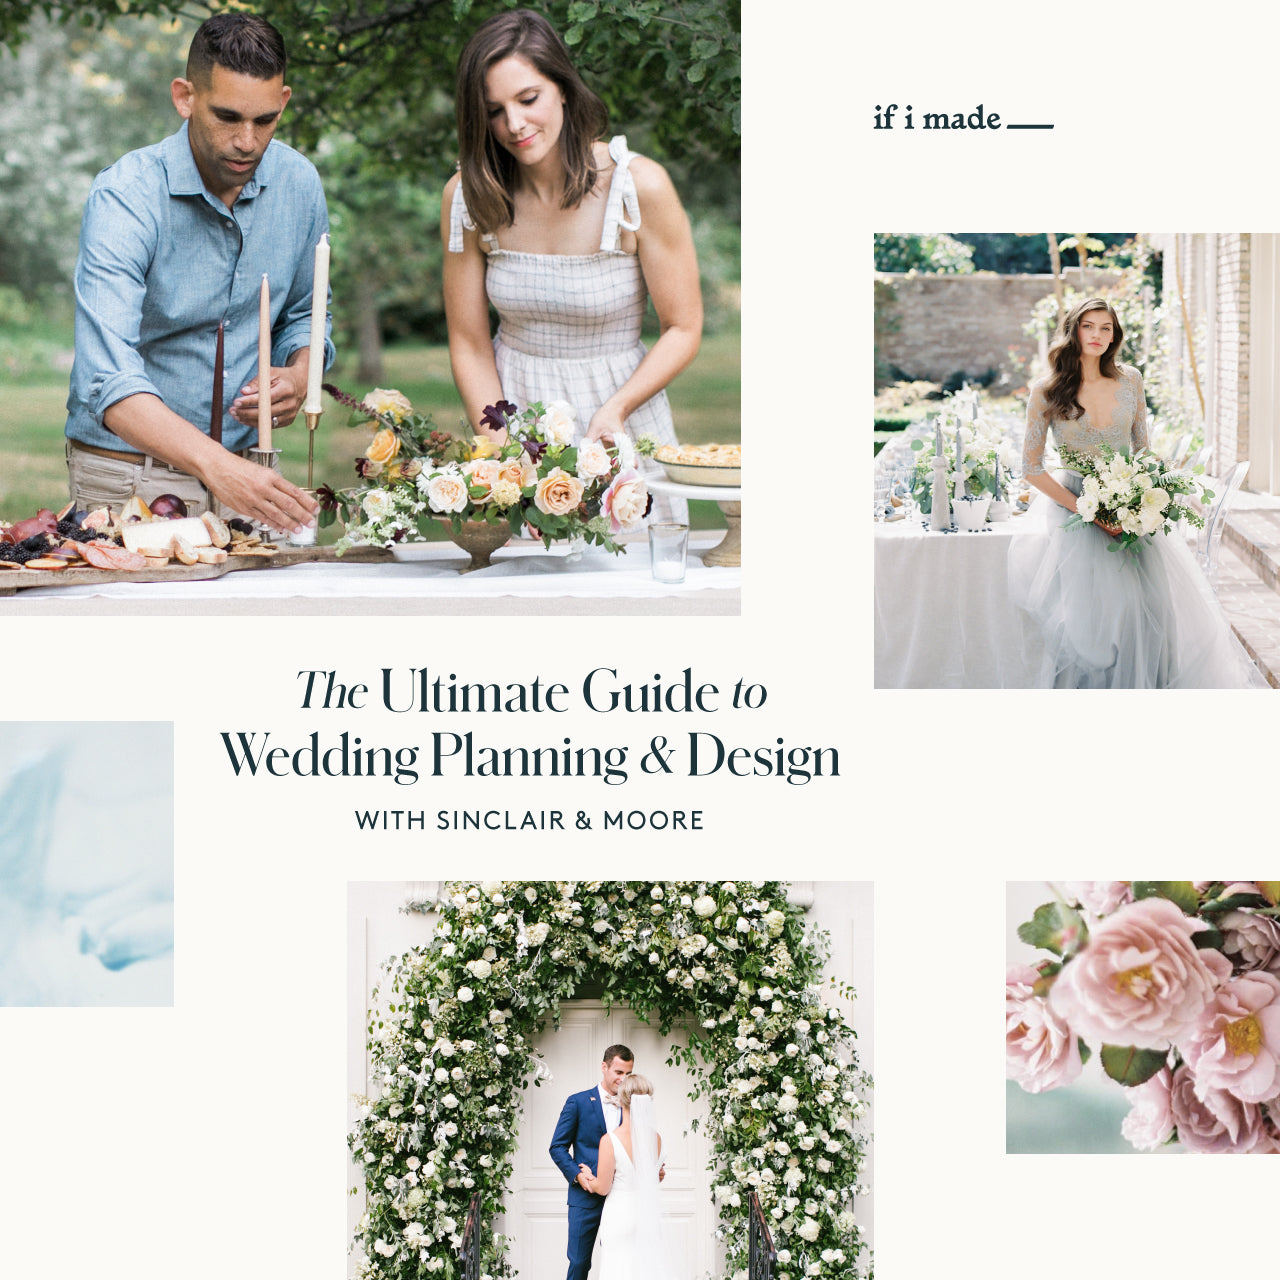 Sale Payment Plan: The Ultimate Guide to Wedding Planning & Design with Sinclair & Moore - 39 payments of $99